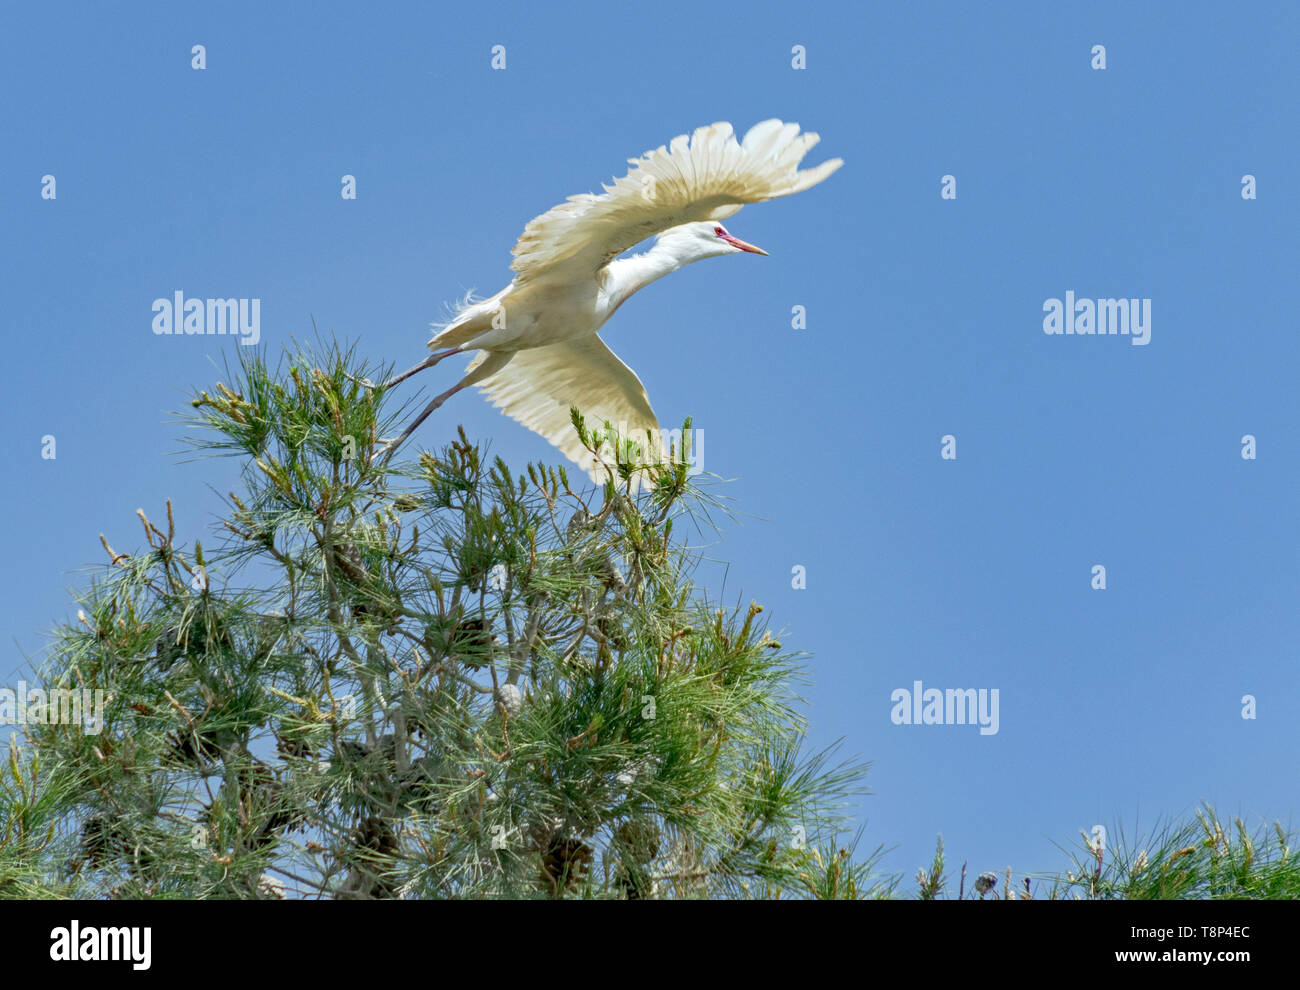 a graceful cattle egret flying away from an aleppo pine tree with a pure blue sky in the background - Stock Image